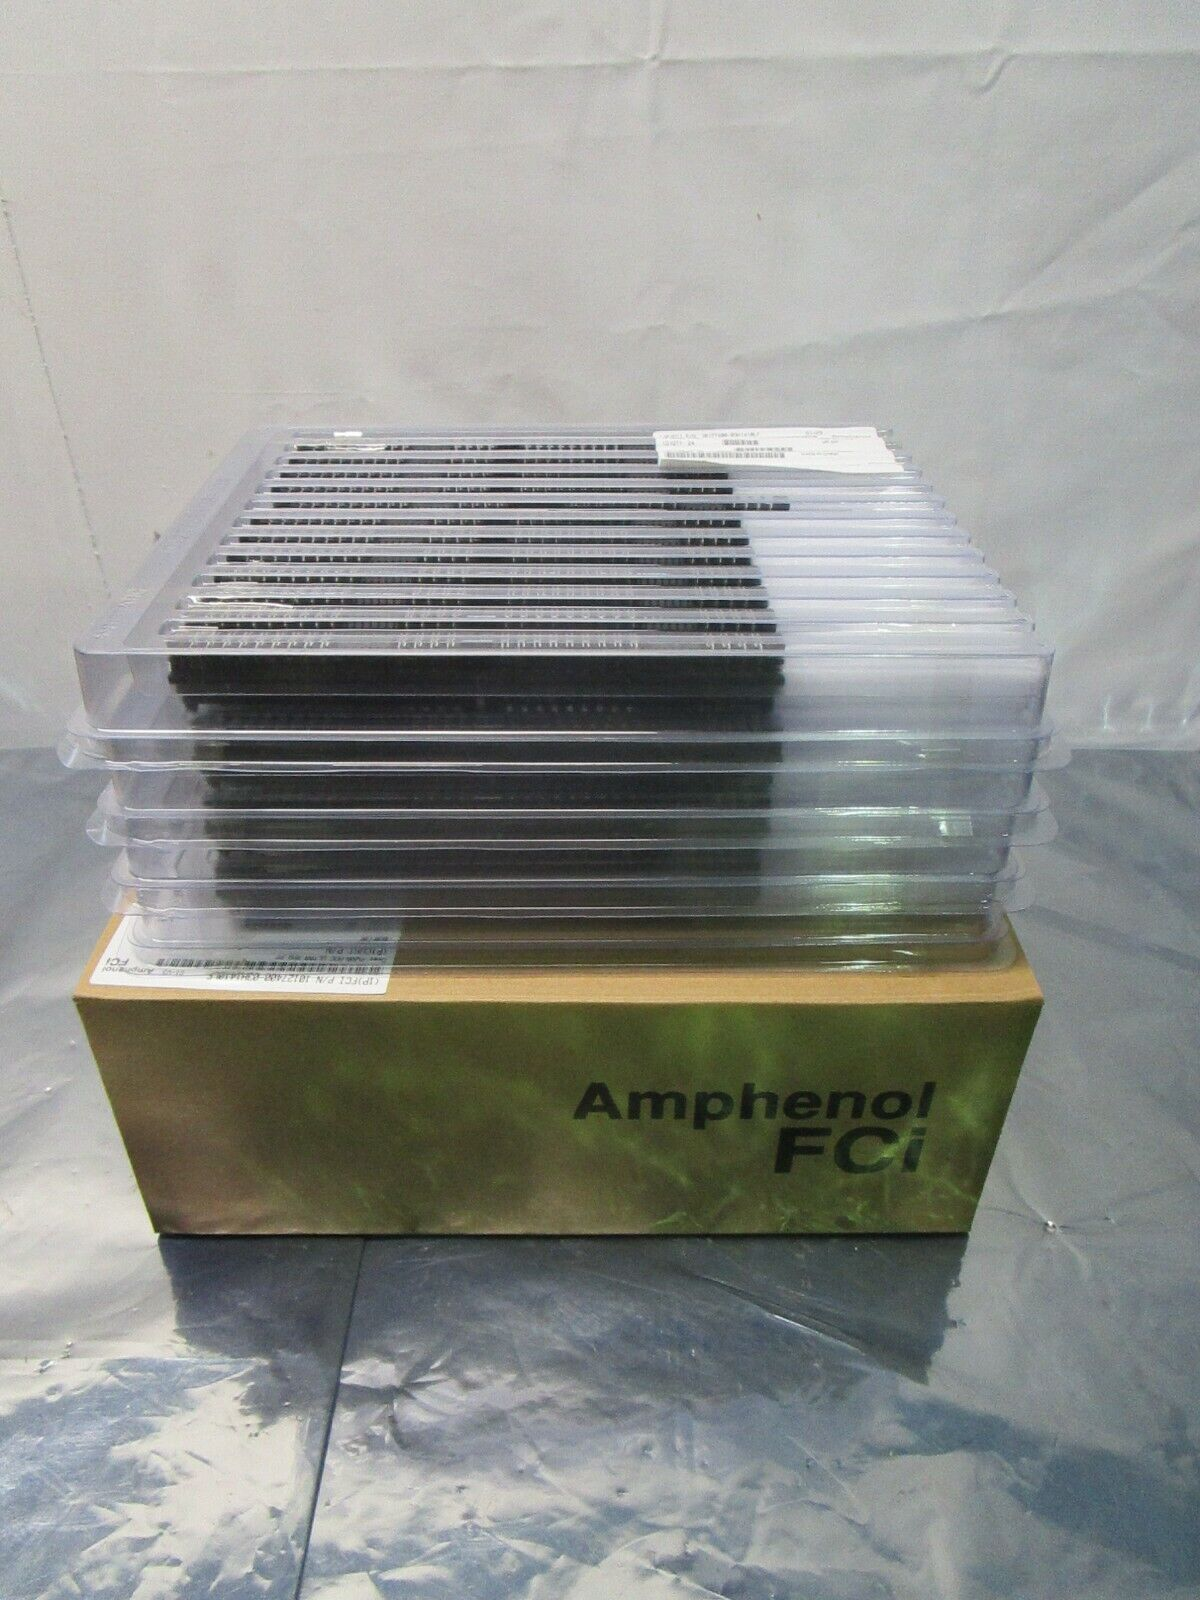 1 Lot of 96 Amphenol FCi 10127400-03H1410LF connector power, 102396